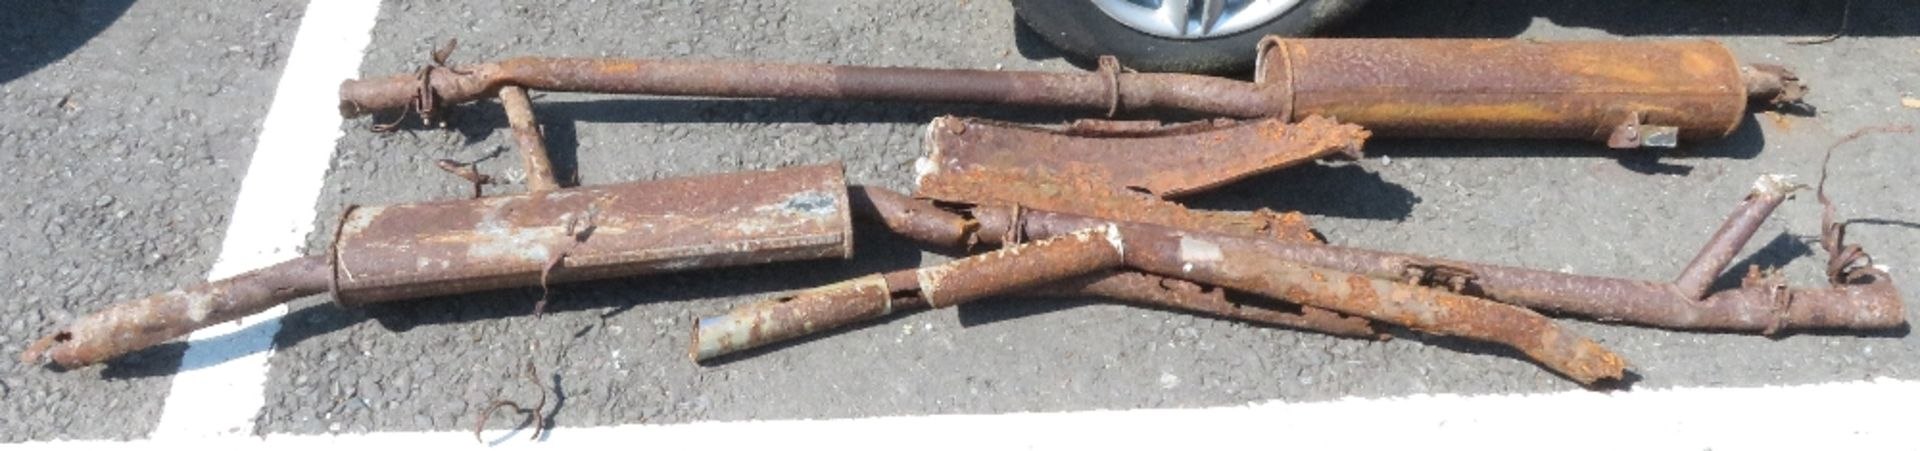 Lot 124 - Daimler 250, Reg no ROK 300G, totally deralict vehicle, barn find, in fact the barn collapsed on top